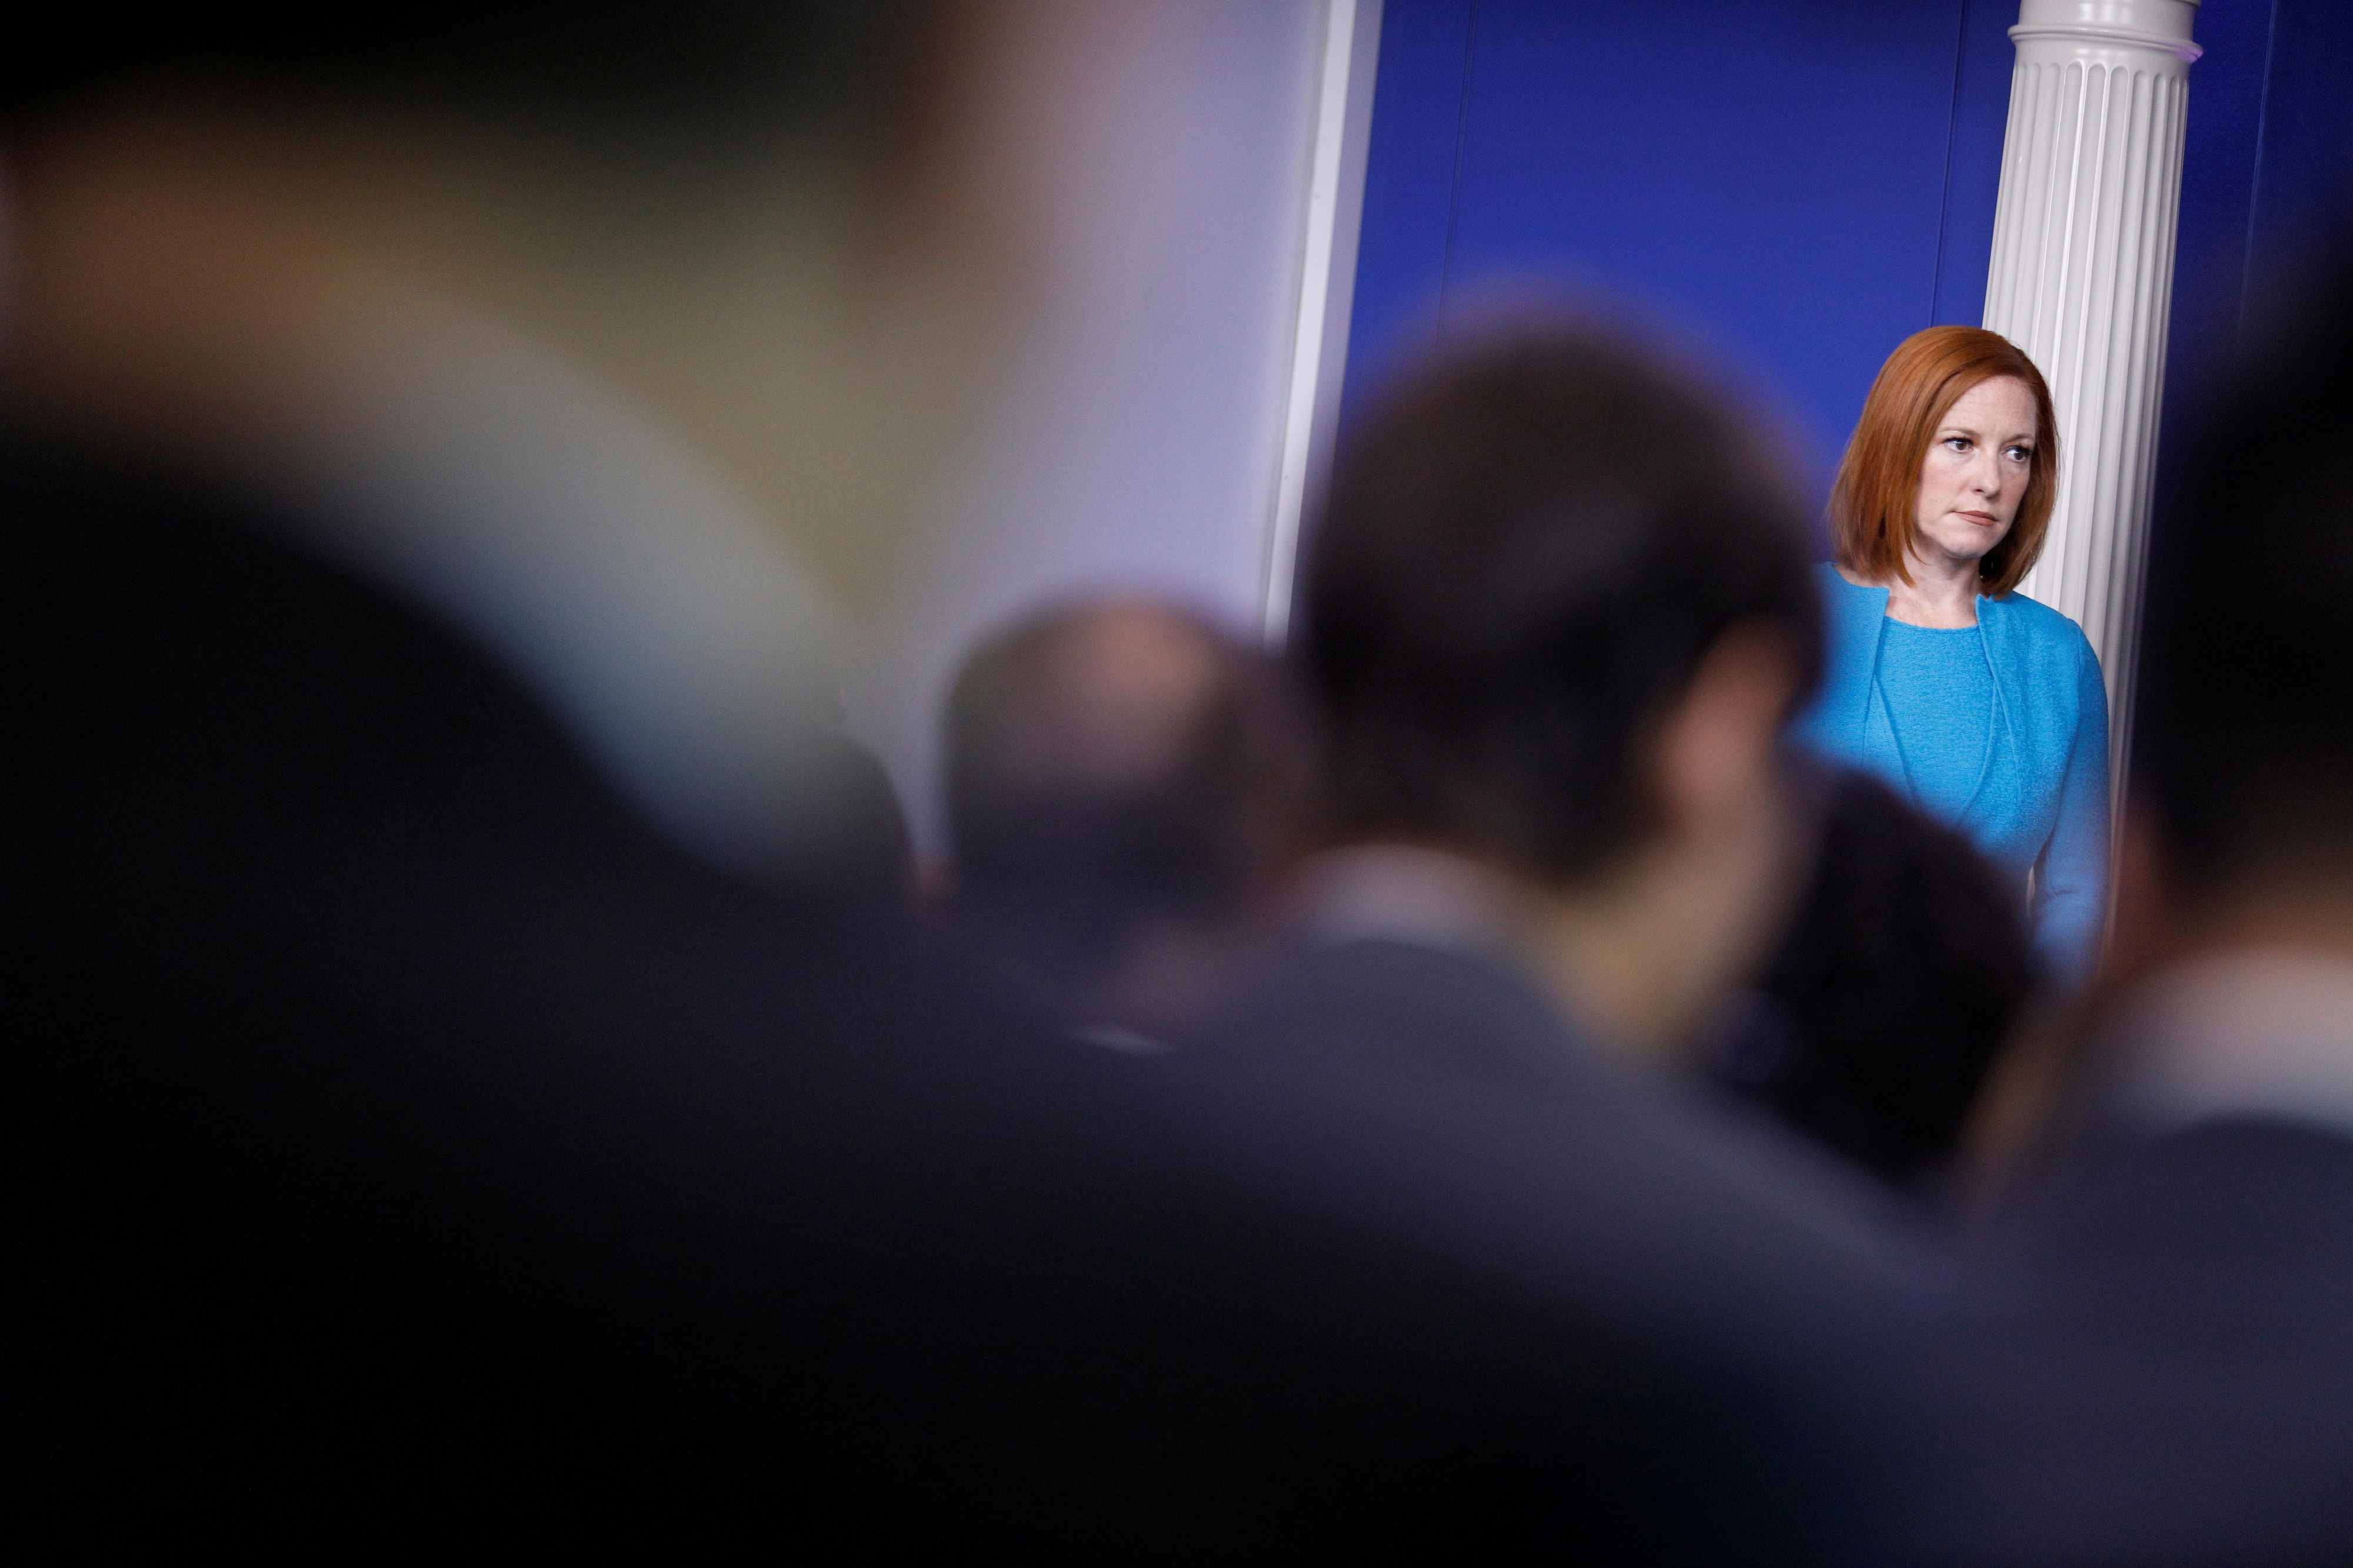 White House Press Secretary Jen Psaki looks on as United States Surgeon General Vivek Murthy delivers remarks during a news conference at the White House in Washington, U.S., July15, 2021. REUTERS/Tom Brenner